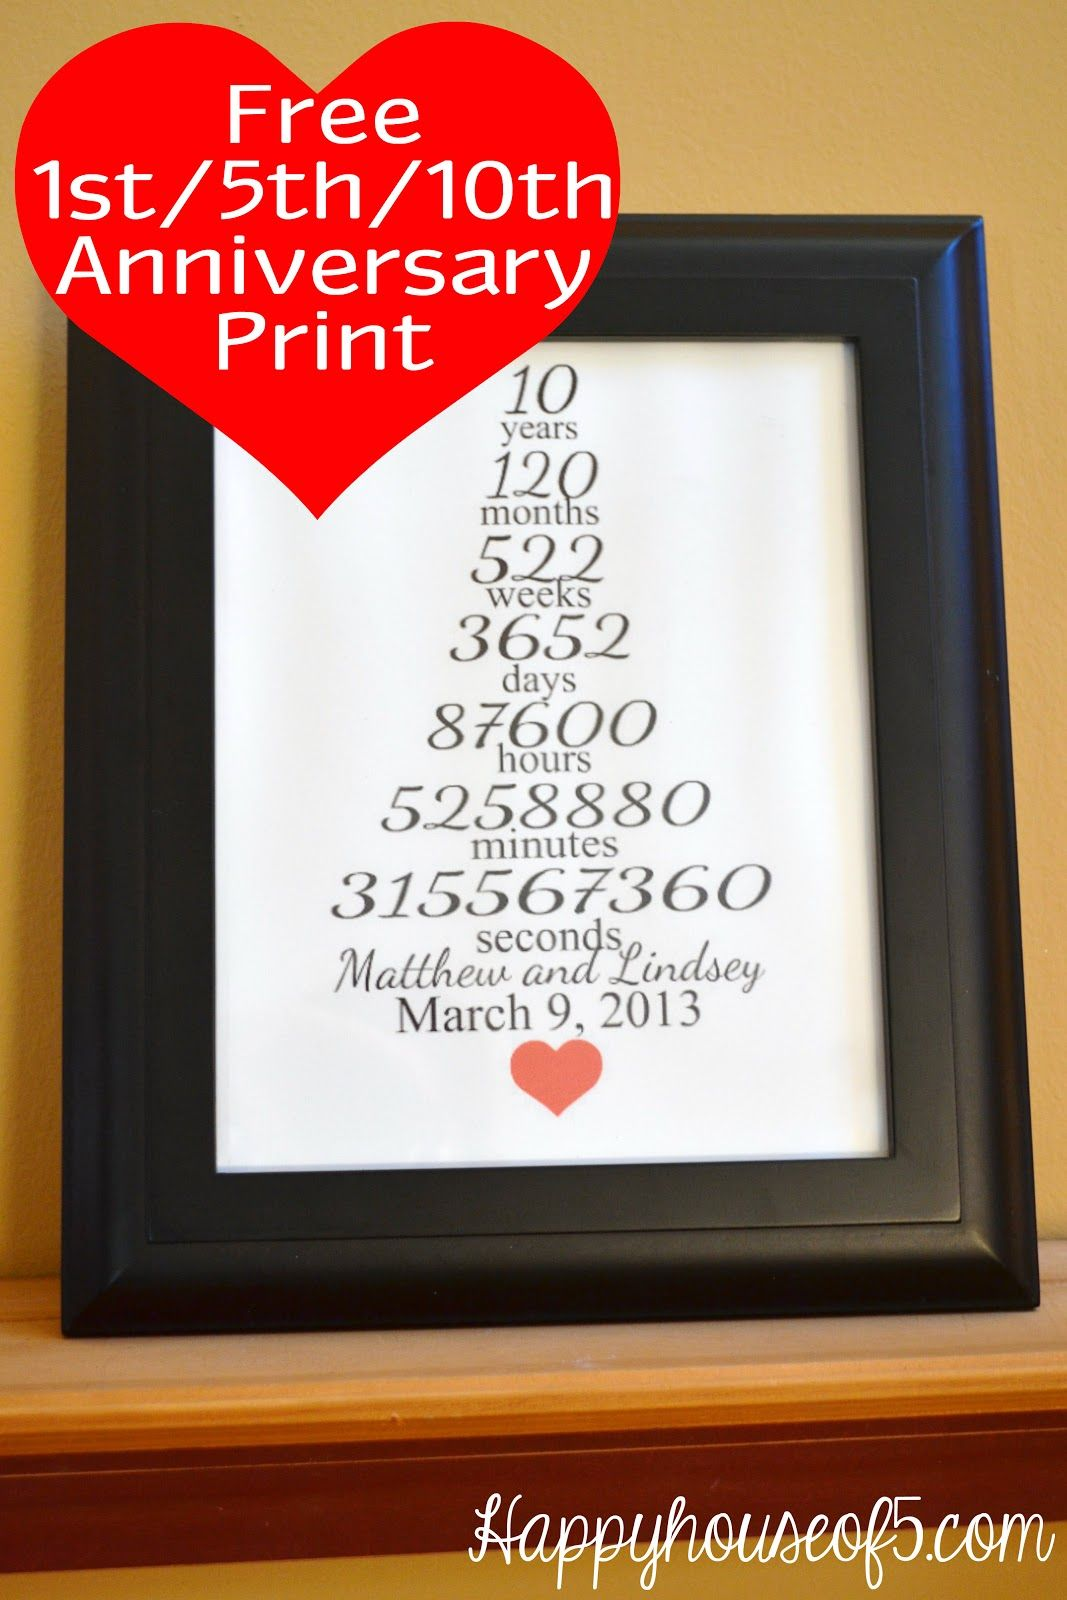 great anniversary print idea Anniversary gifts